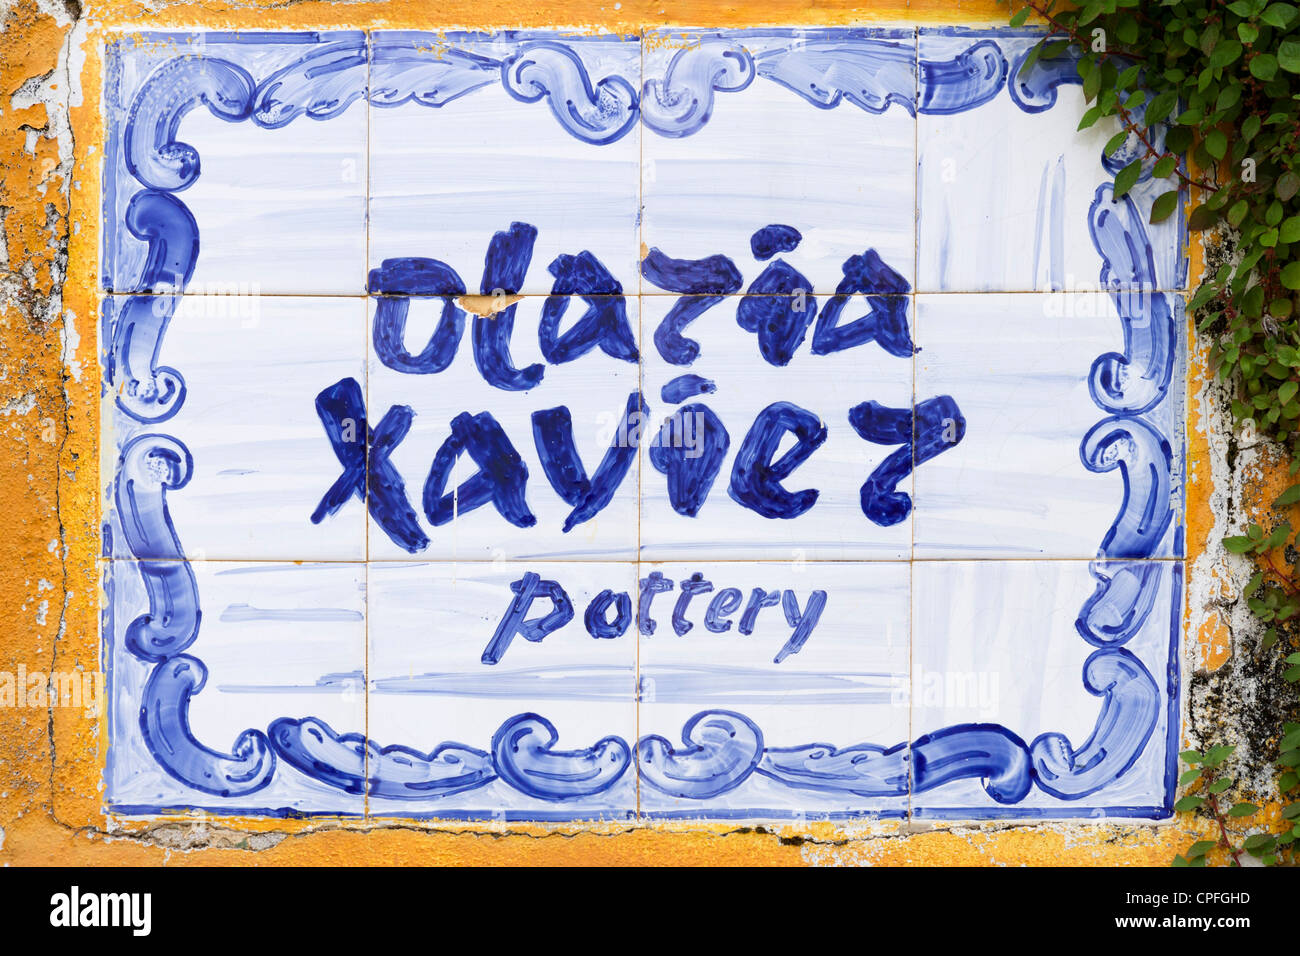 Sign outside a traditional pottery shop in the inland town of Loule, Algarve, Portugal - Stock Image